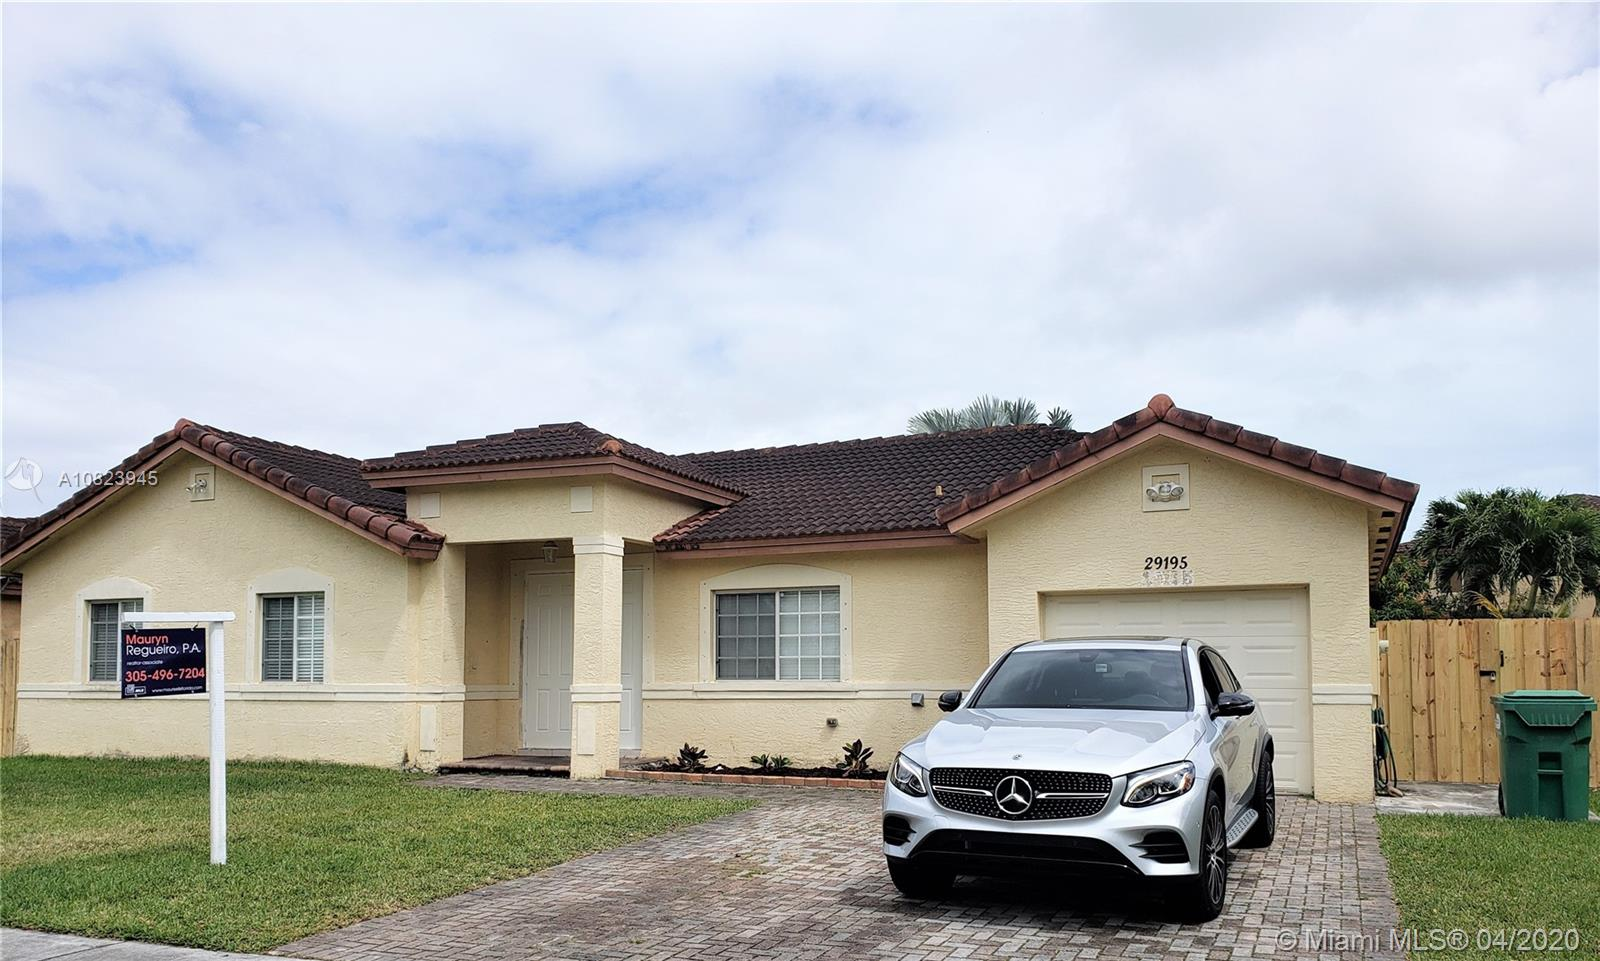 29195 SW 143rd Ave, Homestead, FL 33033 - Homestead, FL real estate listing